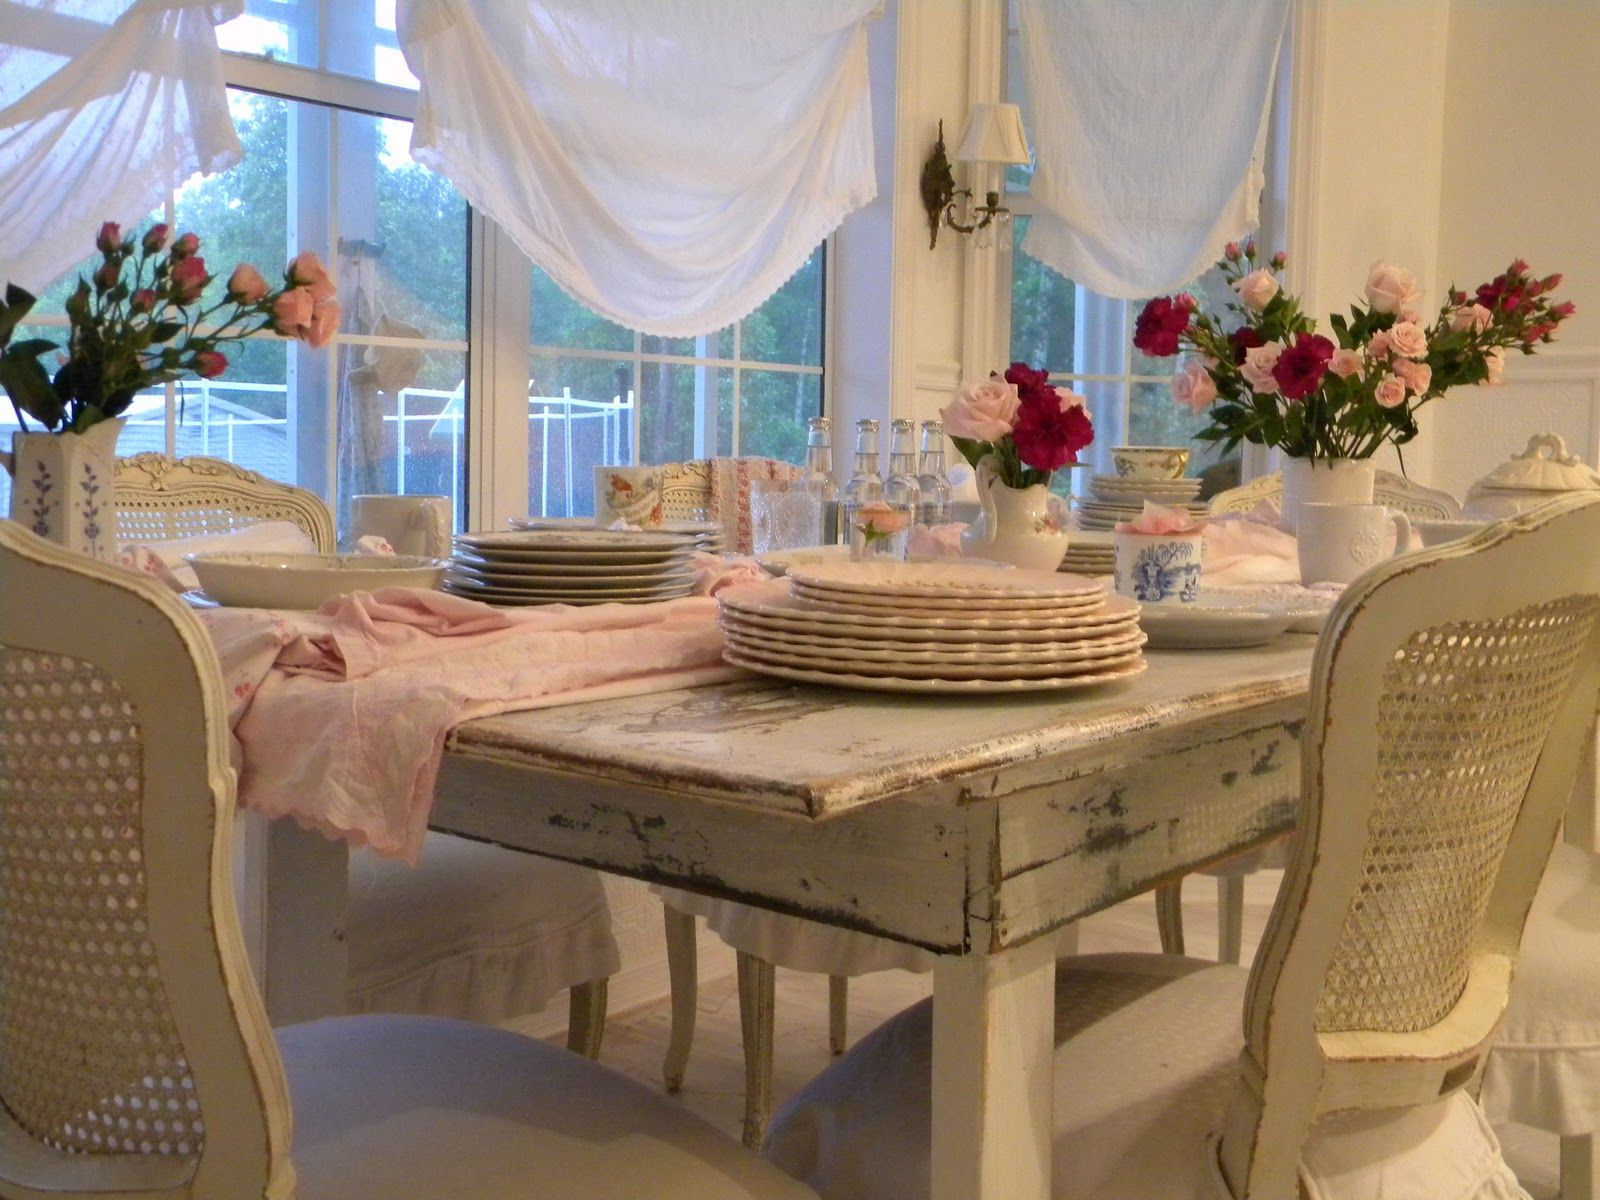 reminds me of Heather's dining room....love it!